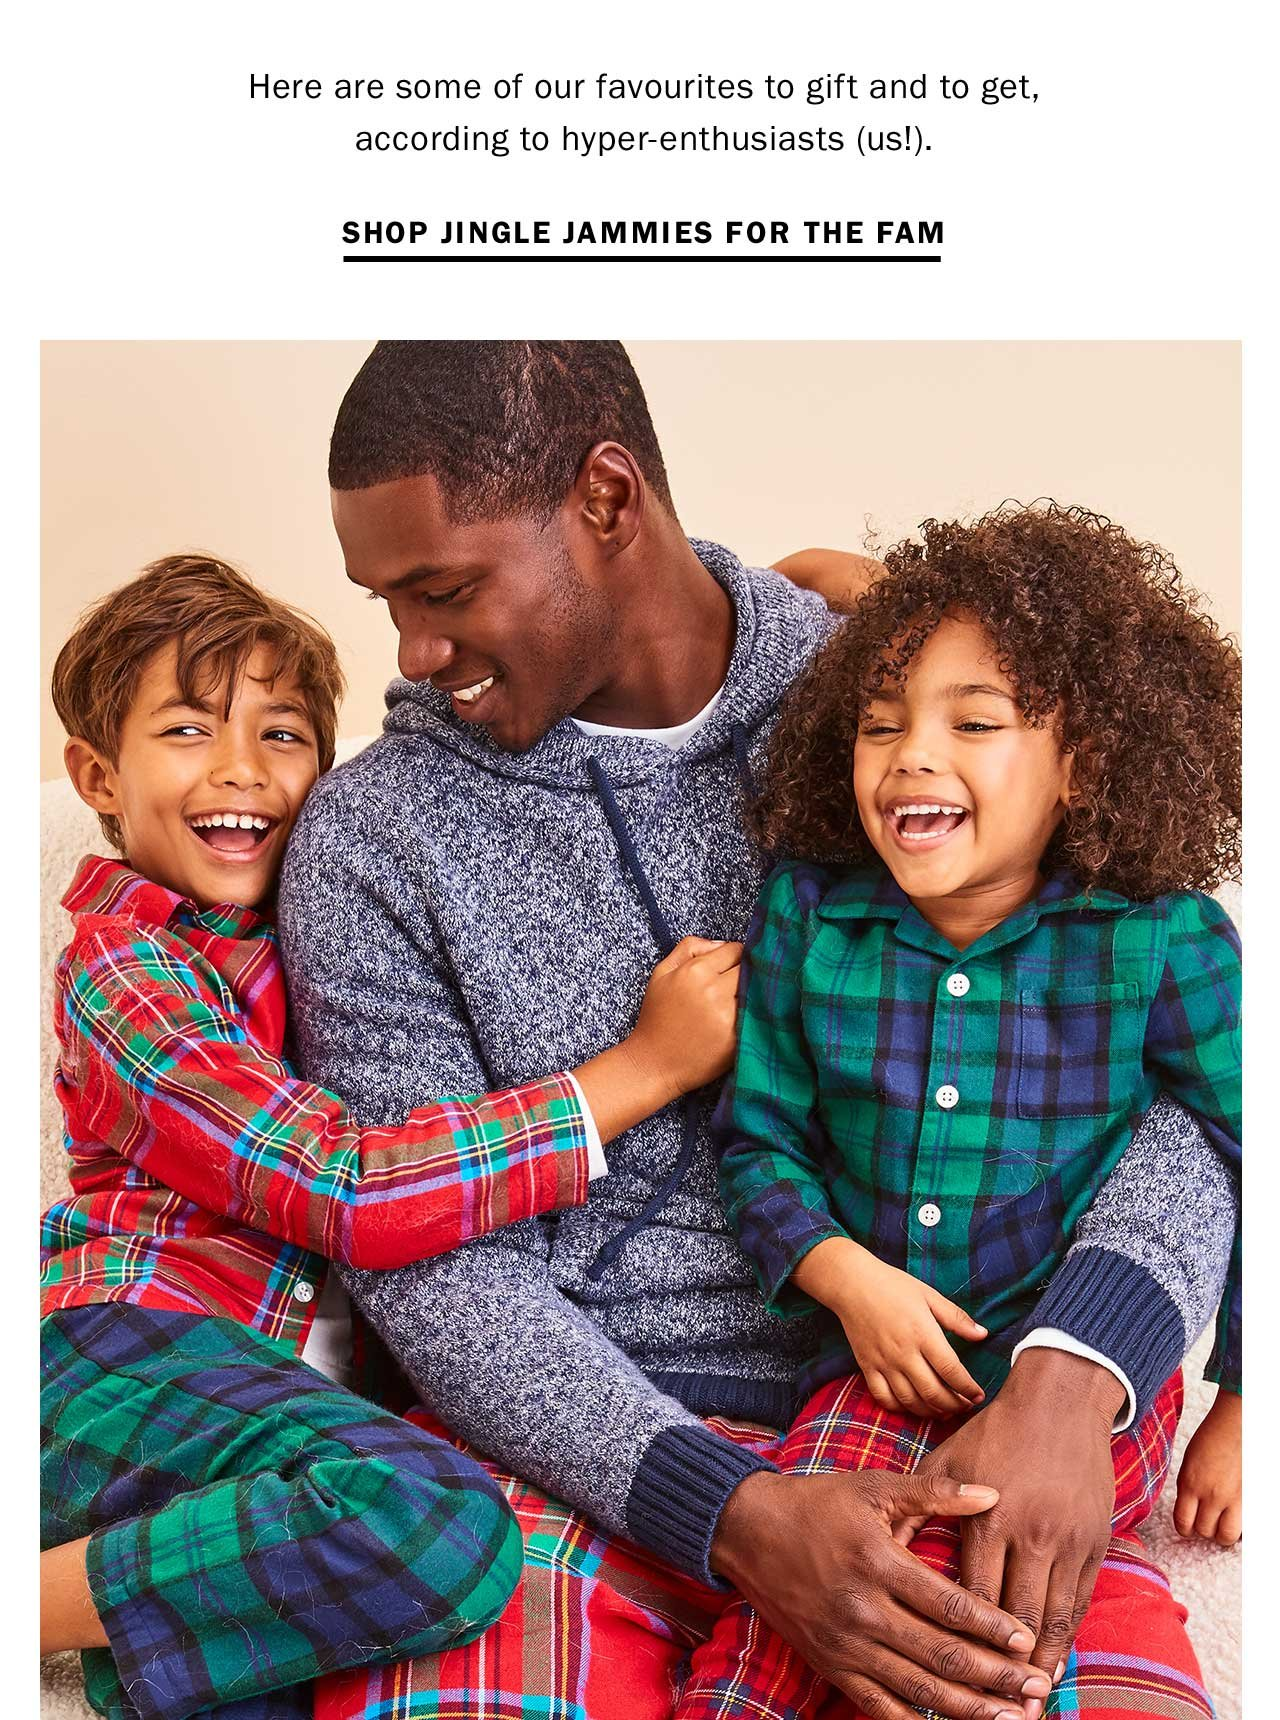 SHOP JINGLE JAMMIES FOR THE FAM